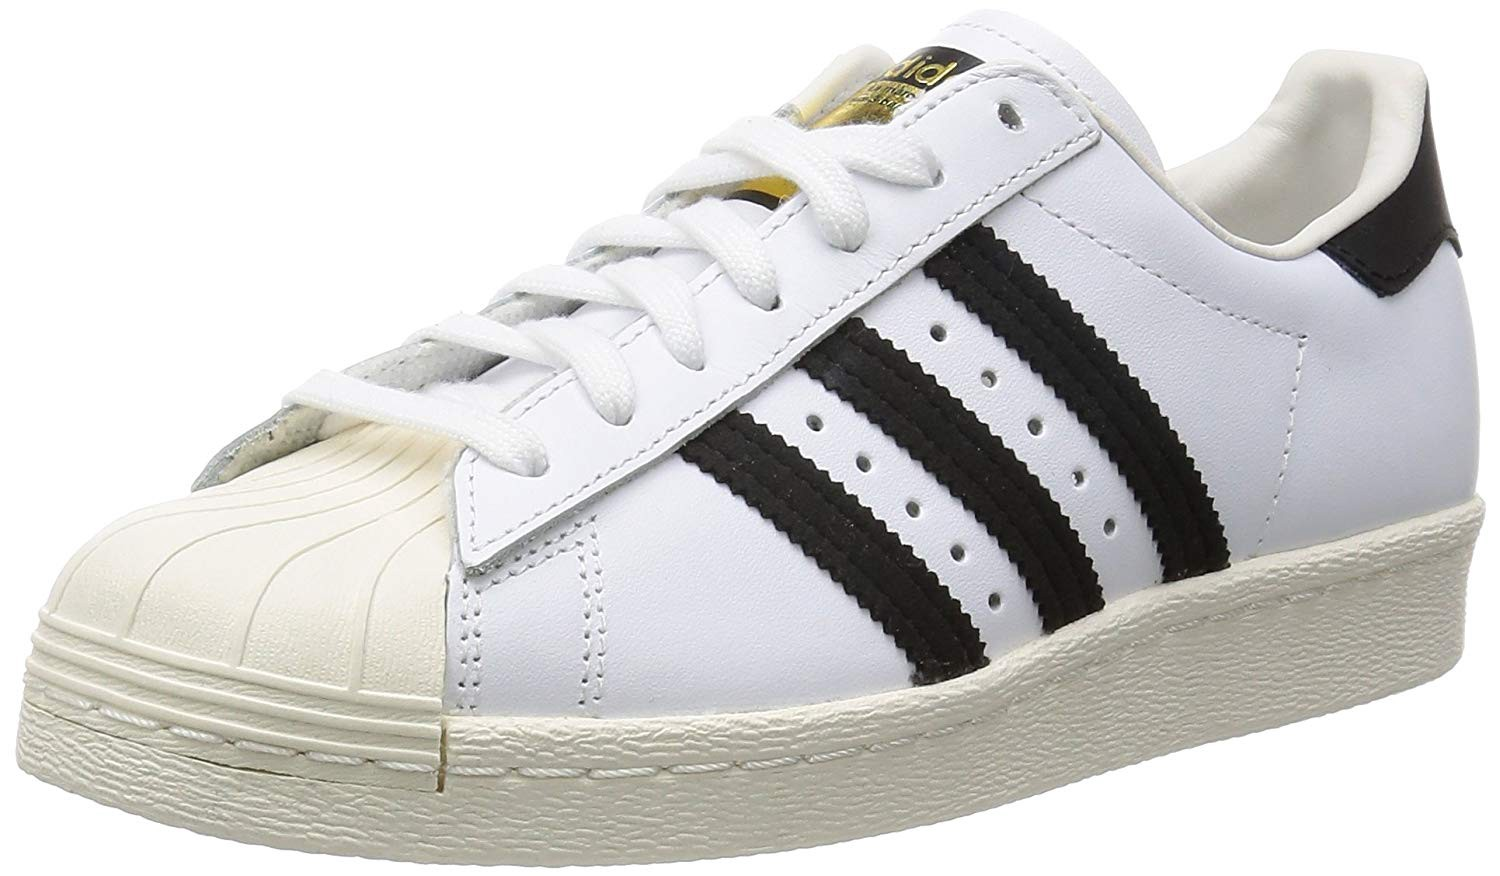 adidas superstar shoelaces